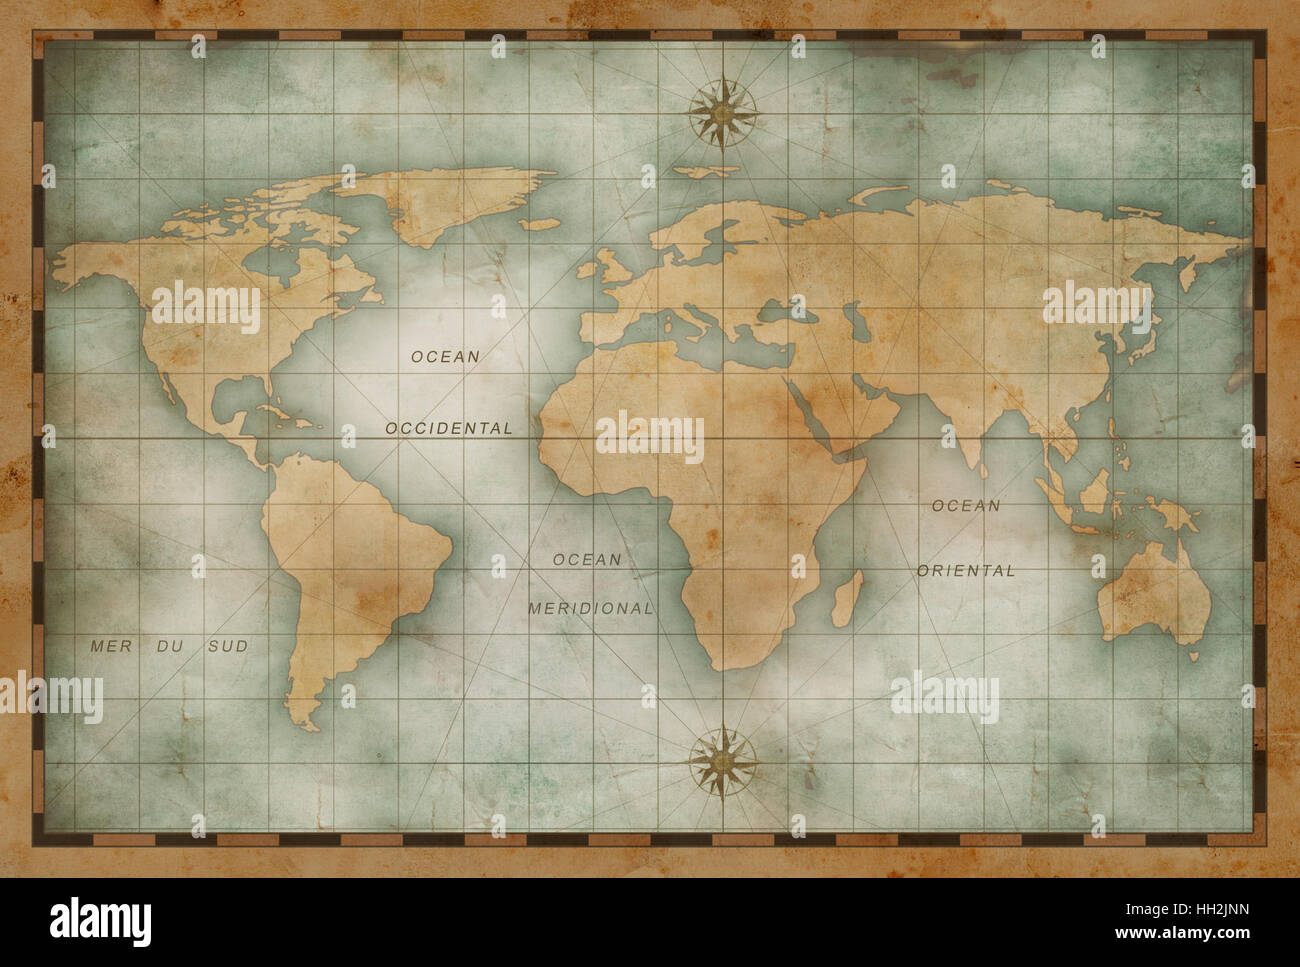 Old nautical world map background stock photo 130980353 alamy old nautical world map background gumiabroncs Gallery